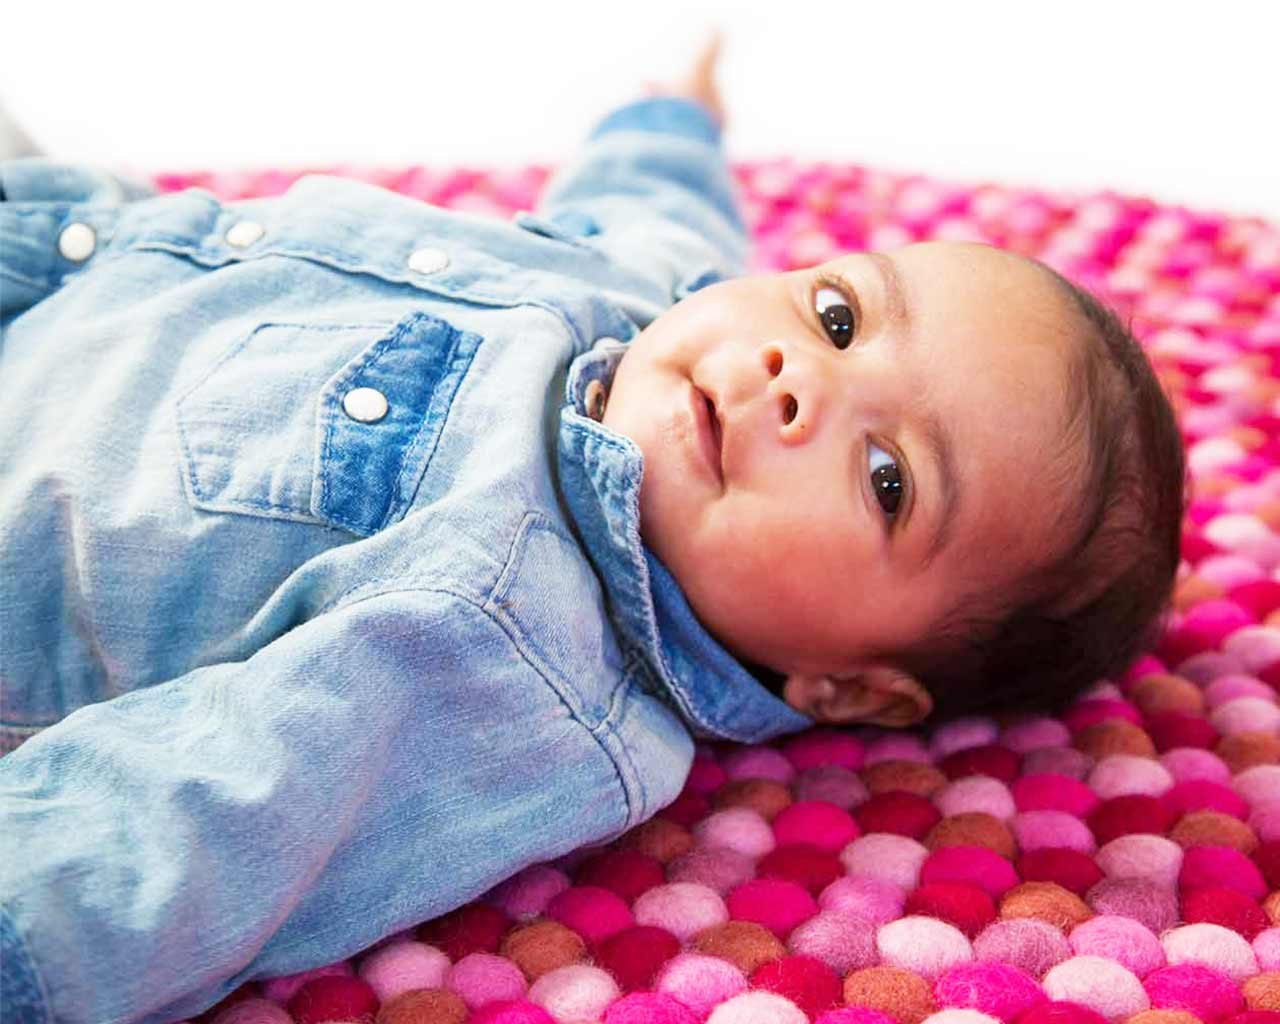 baby photo on carpets